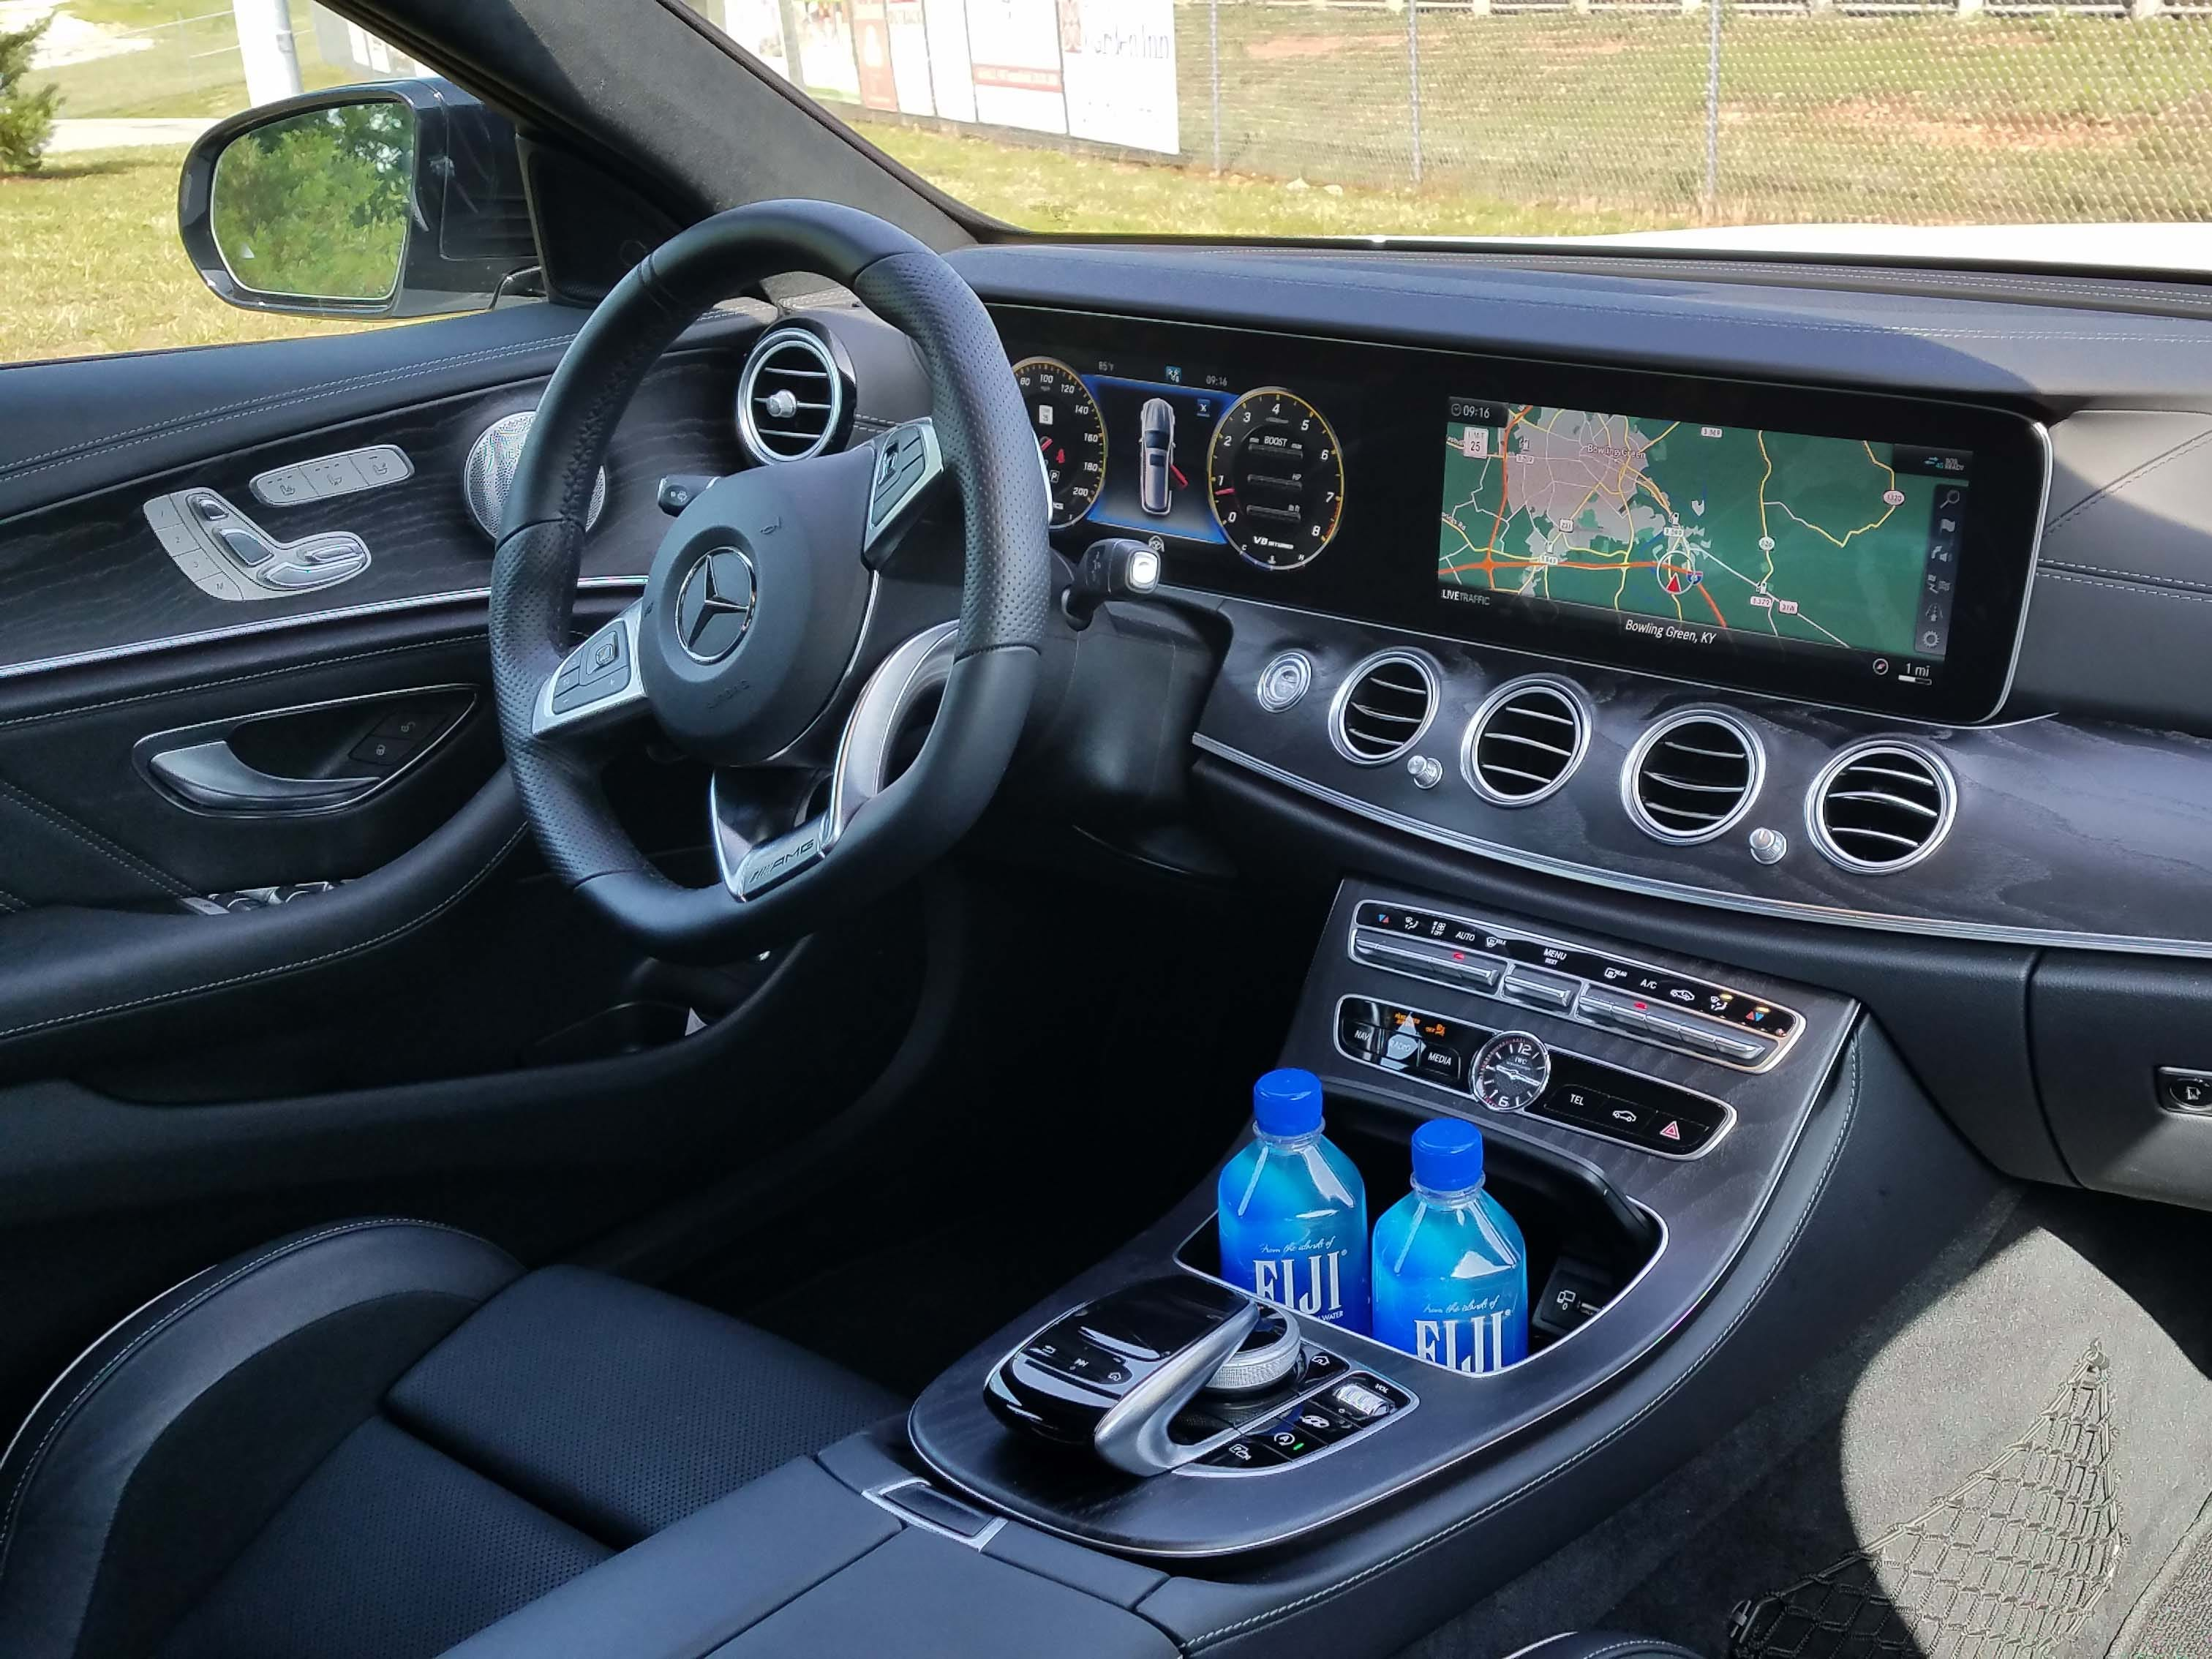 The Mercedes-AMG E63 S wagon interior is a lovely place to be with a broad digital screen, graphics, aviator-style air vents and rich wood trim.